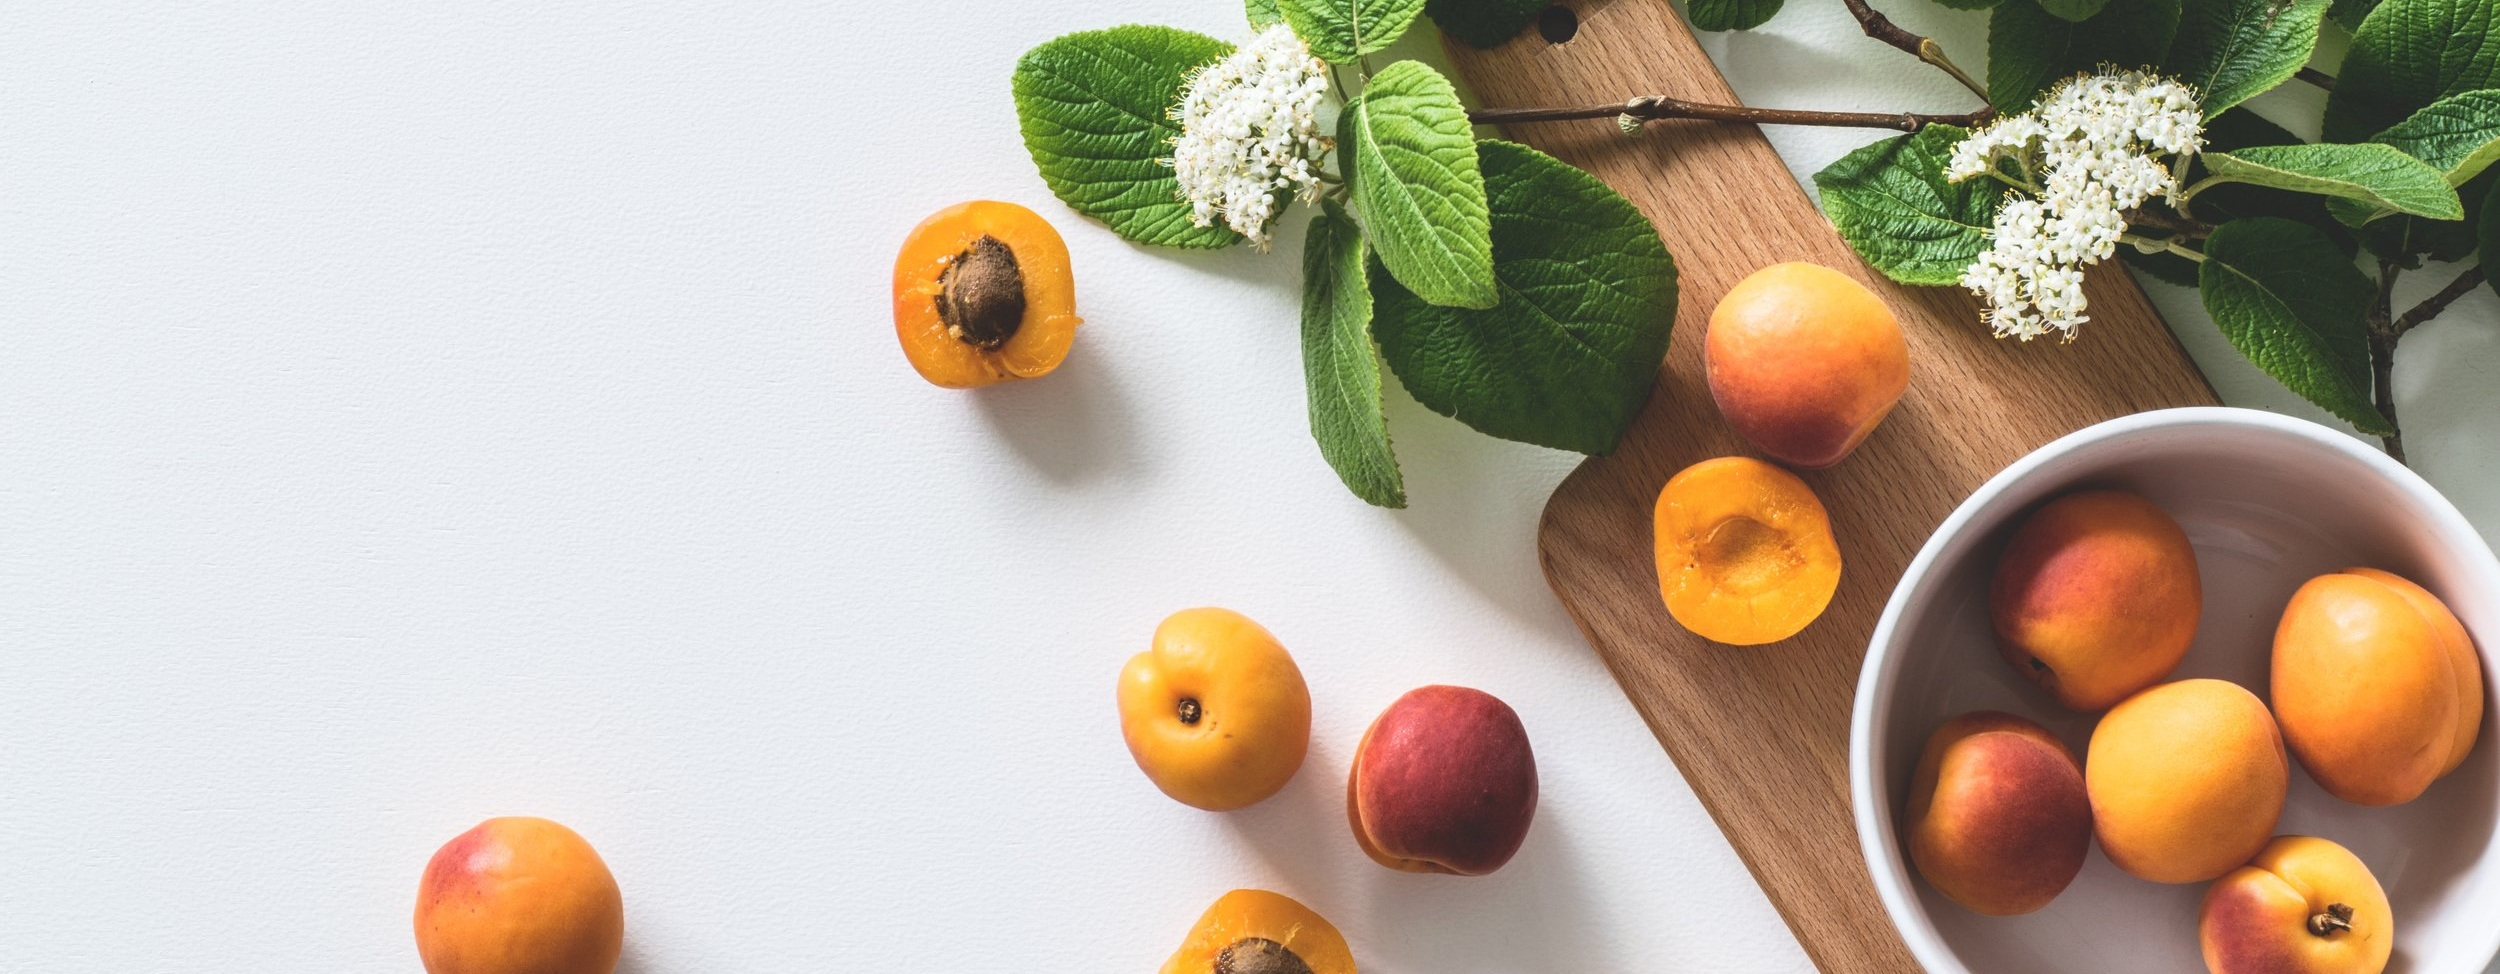 apricot-background-berry-1028599.jpg